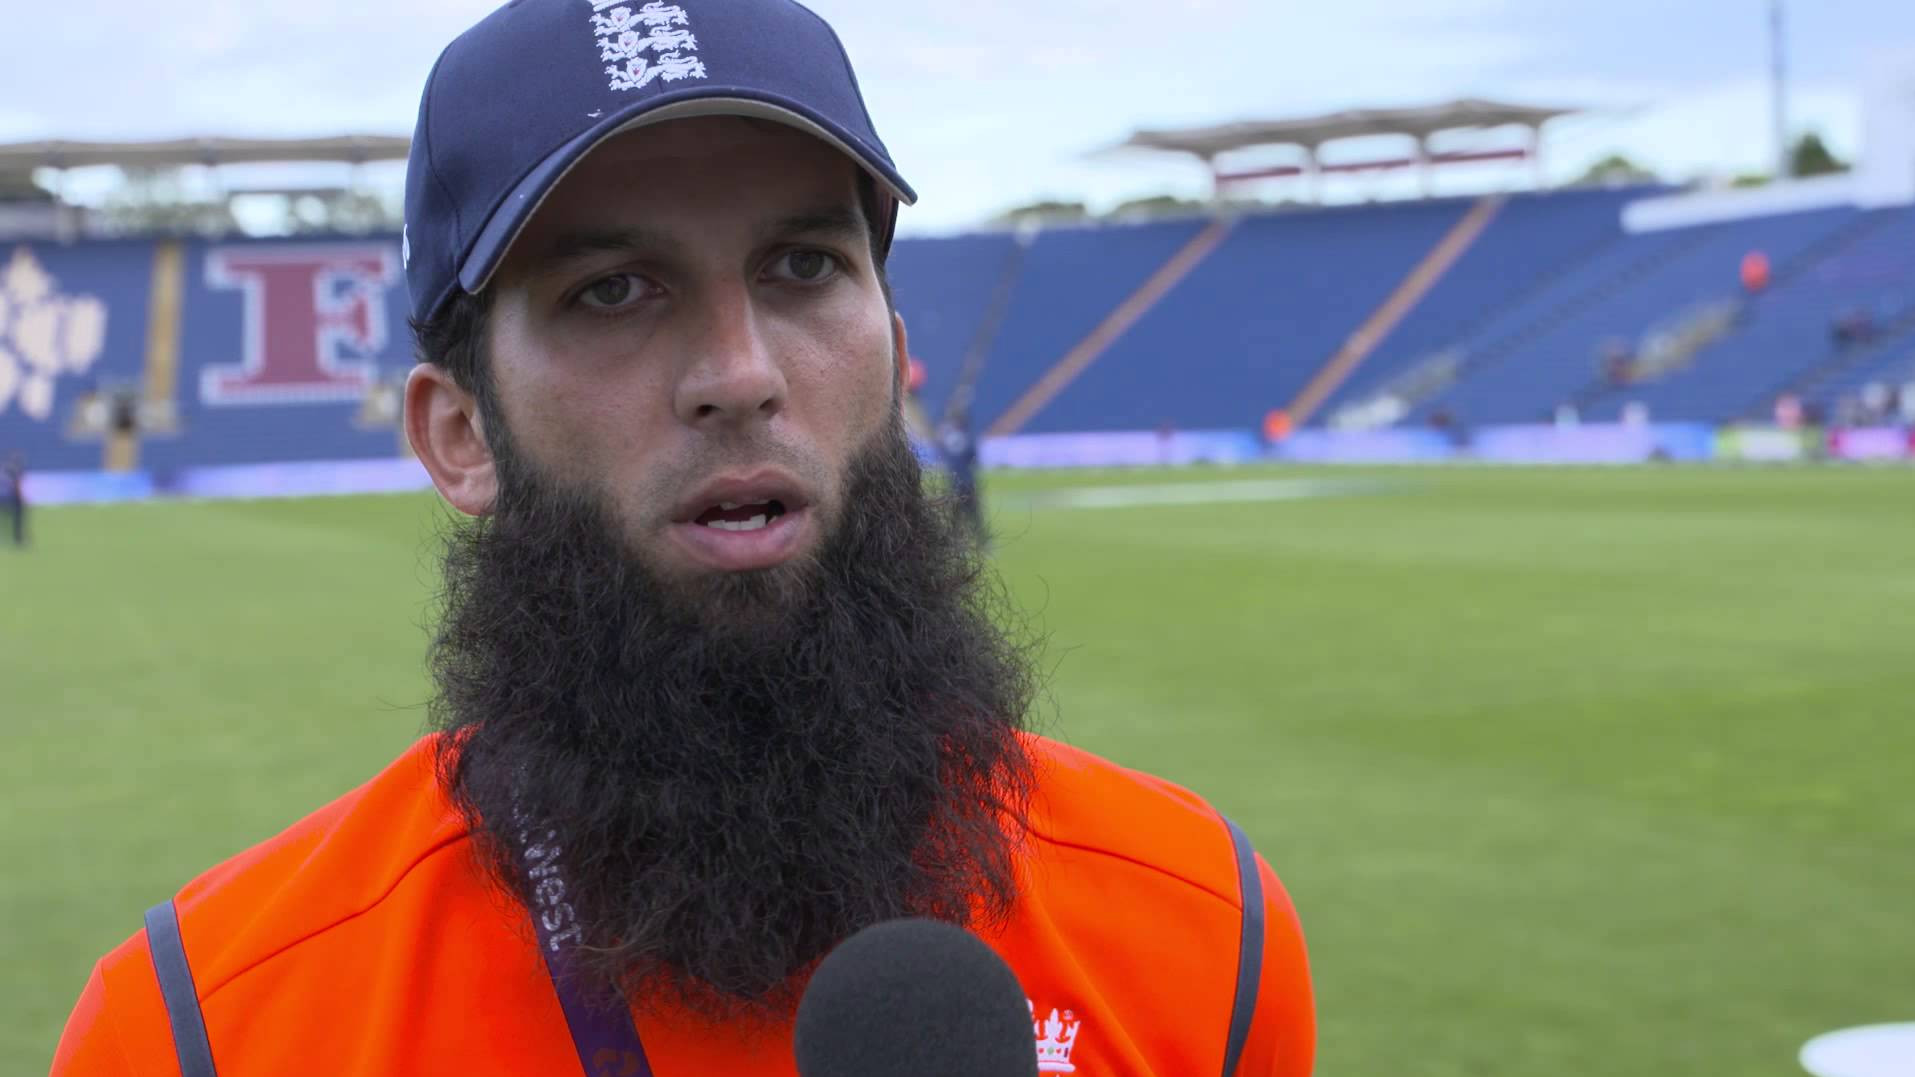 SL v ENG 2018: Moeen Ali ready to embrace expectation in Sri Lanka after stellar warm-up show